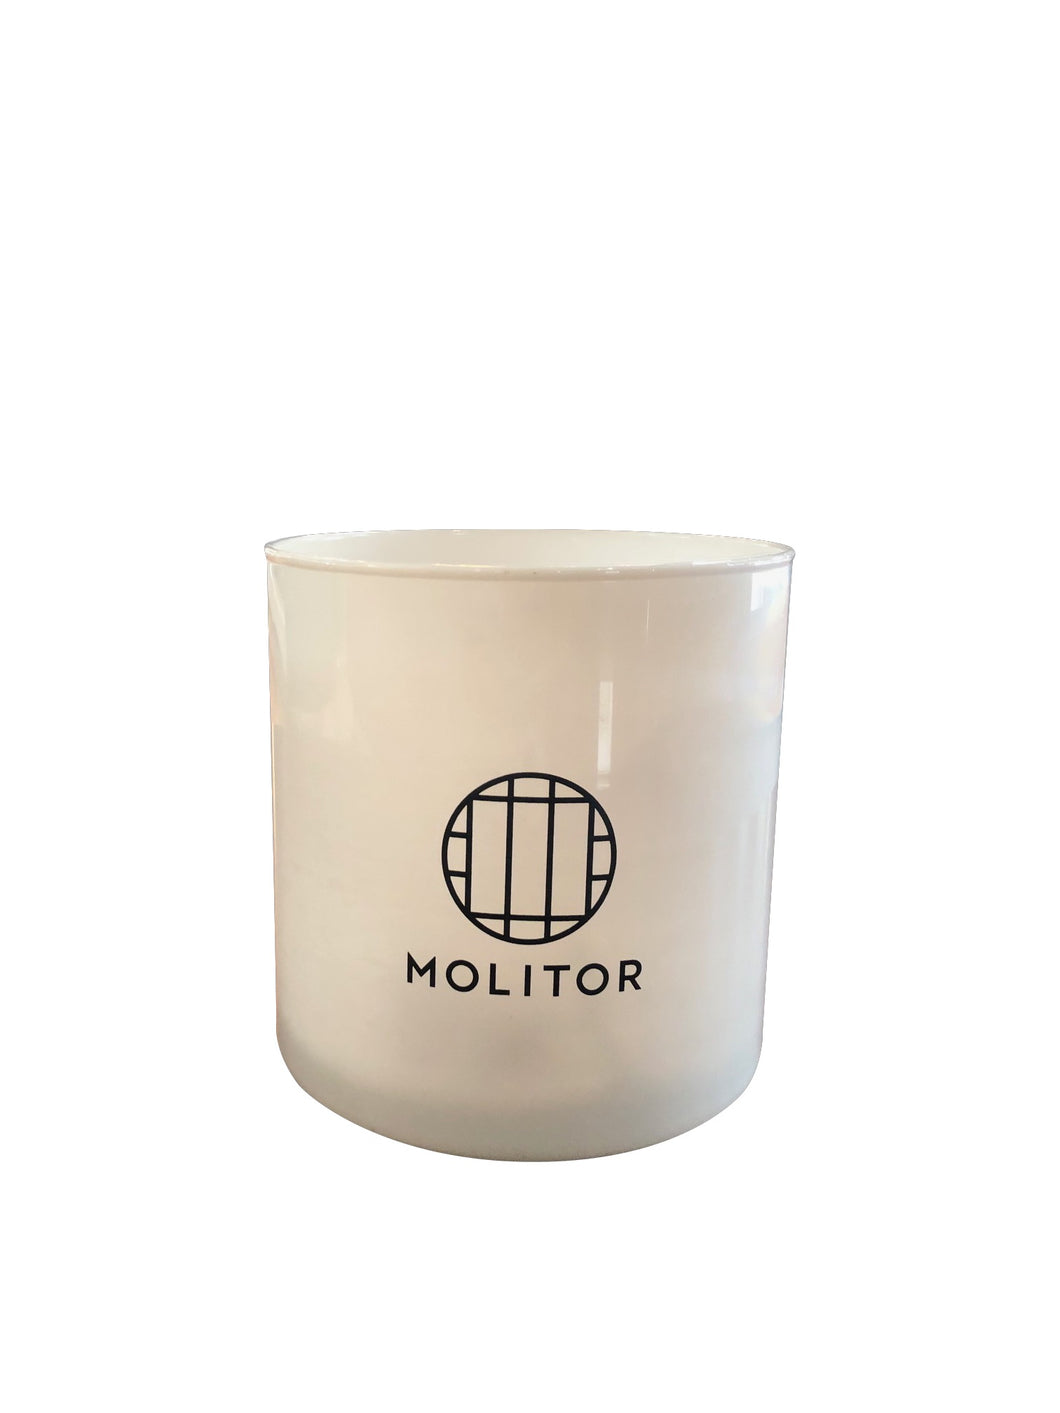 The Molitor Candle